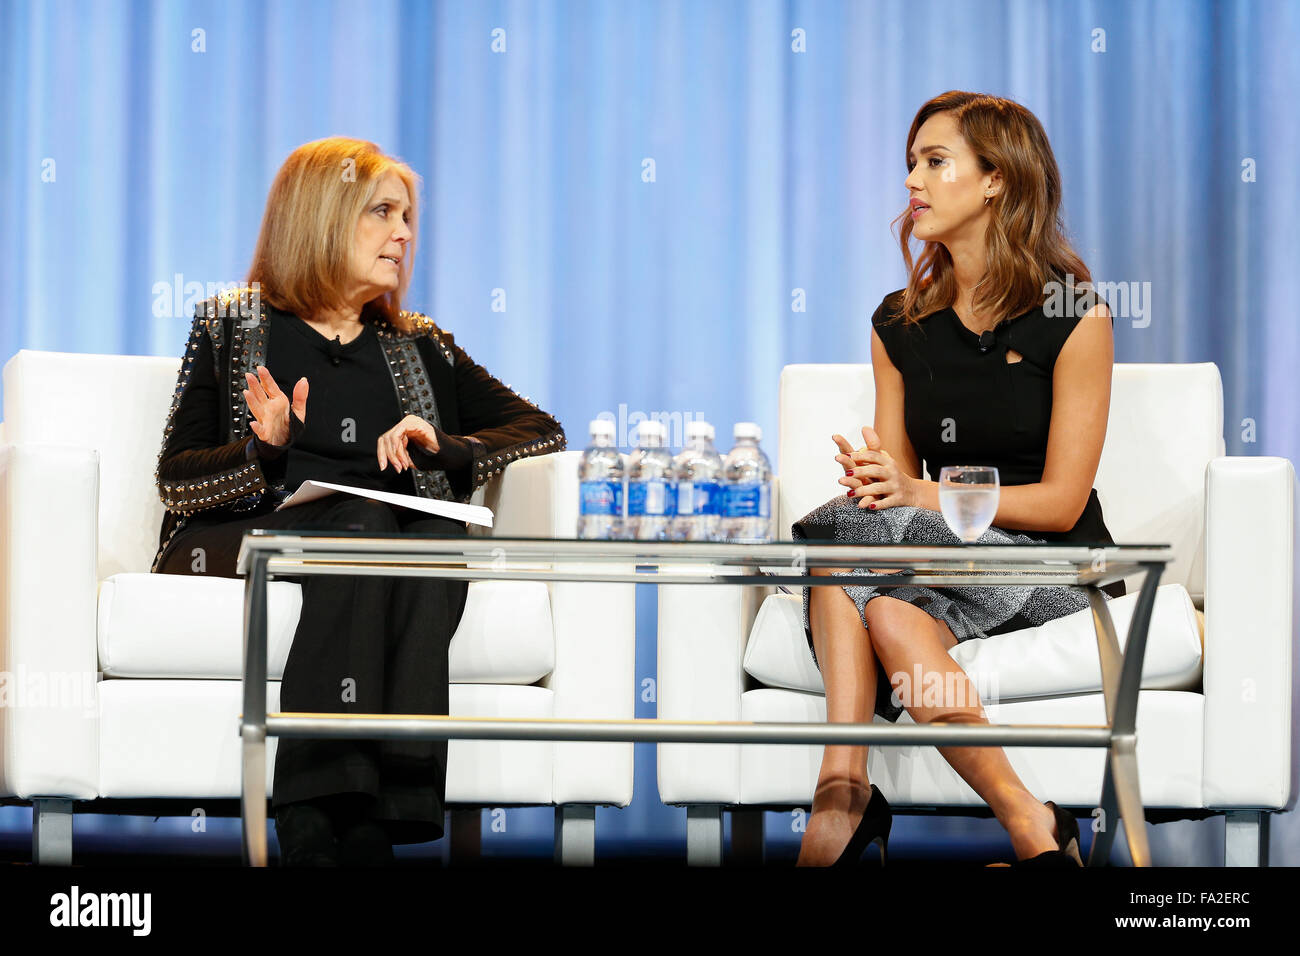 Summer Conference Keynoted By Jessica >> Jessica Alba Speaks During A Keynote Q A With Gloria Steinem At The